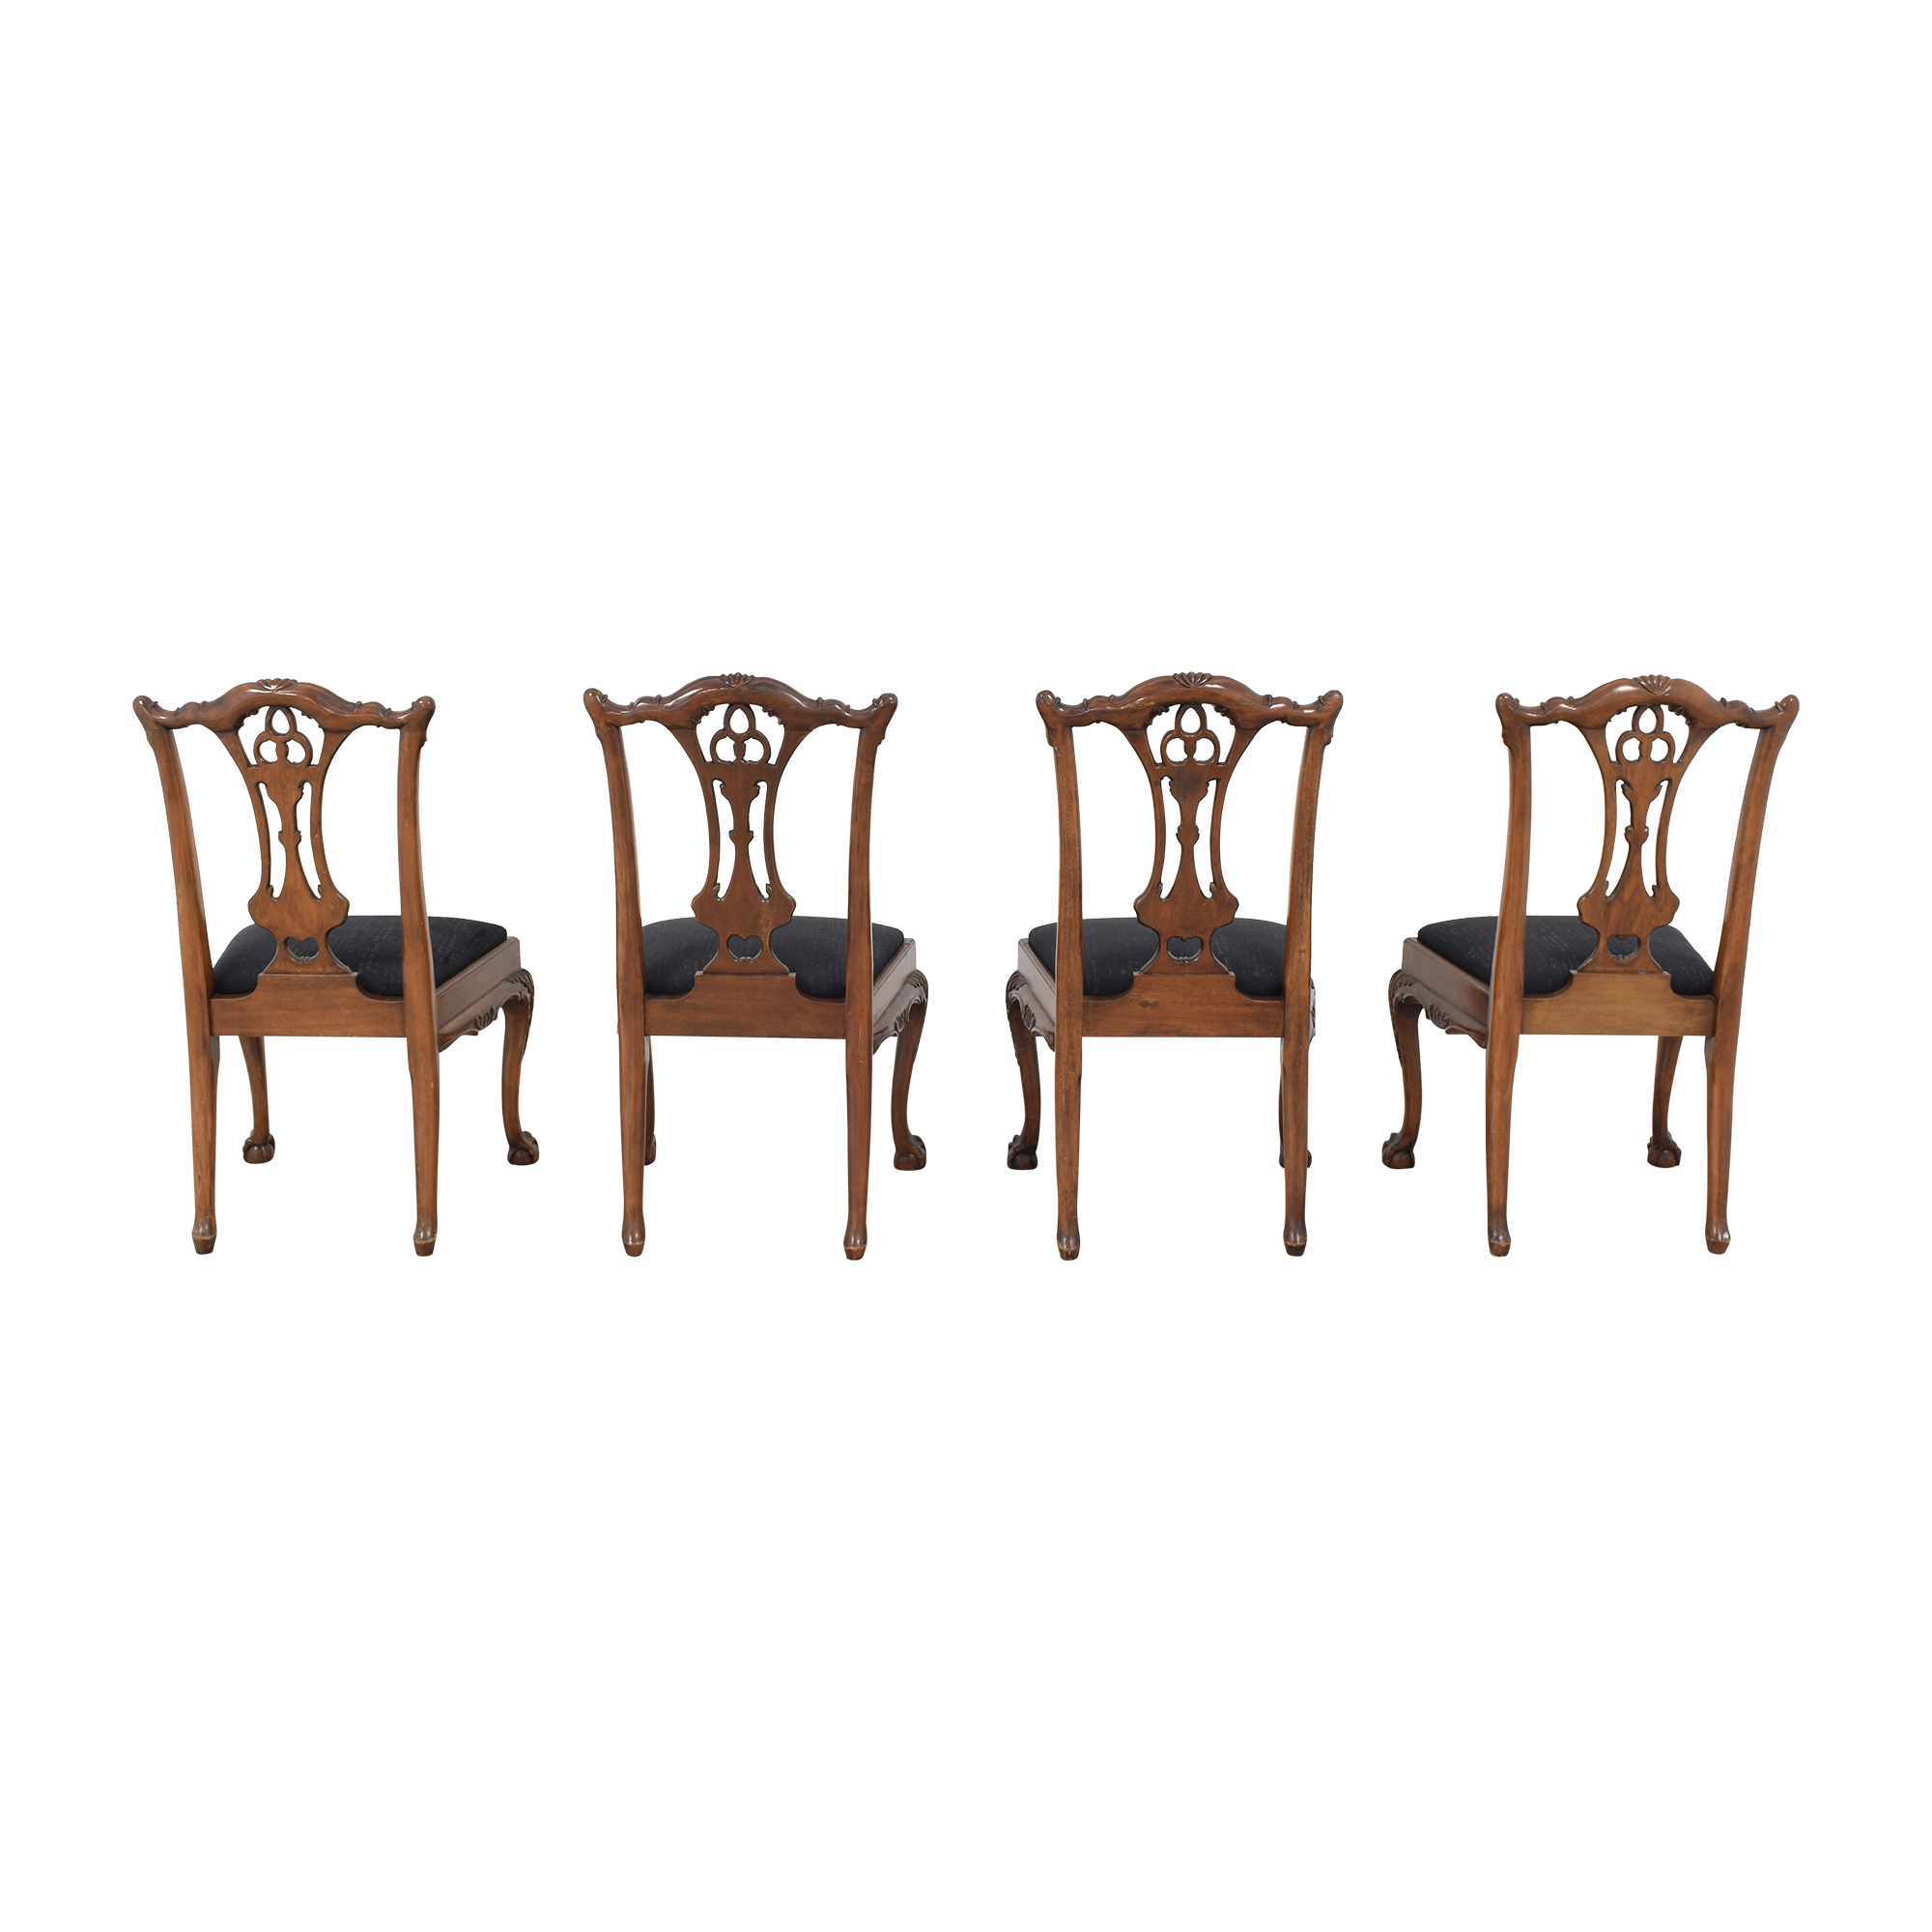 Maitland-Smith Maitland-Smith Carved Chippendale Style Dining Chairs discount